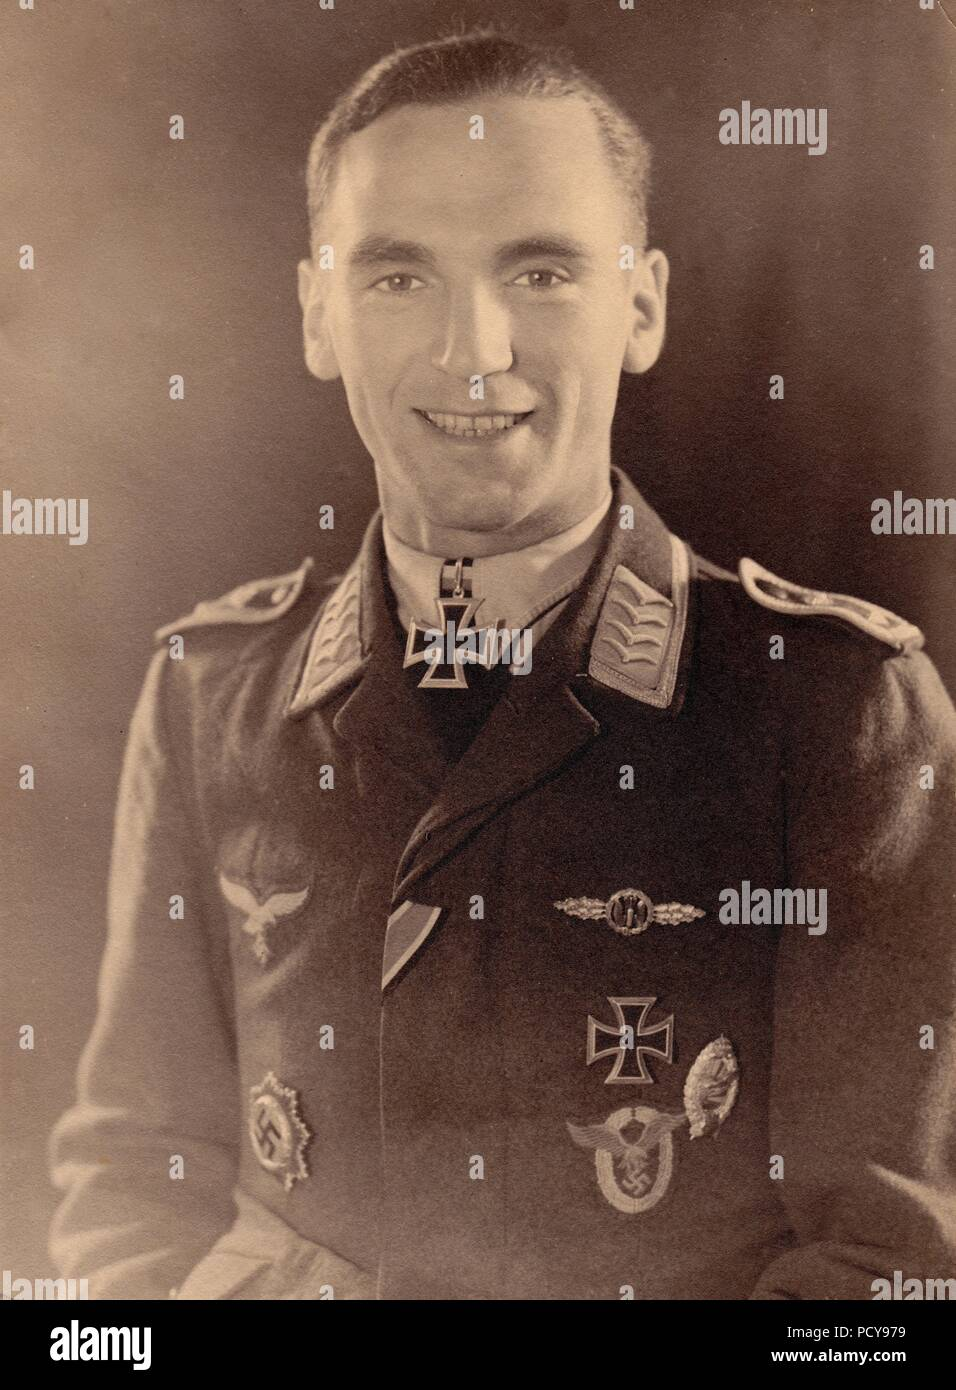 Portrait photograph of Oberfeldwebel Karl Müller, a bomber pilot with 1. Staffel, Kampfgeschwader 2, following his award of the Knight's Cross of the Iron Cross on 15th October 1942. In addition to the Knight's Cross, Müller also wears the German Cross in Gold, Bomber Clasp in Gold, Iron Cross 1st Class, Luftwaffe Pilot Badge in cloth and Bulgarian Pilot Badge. Stock Photo